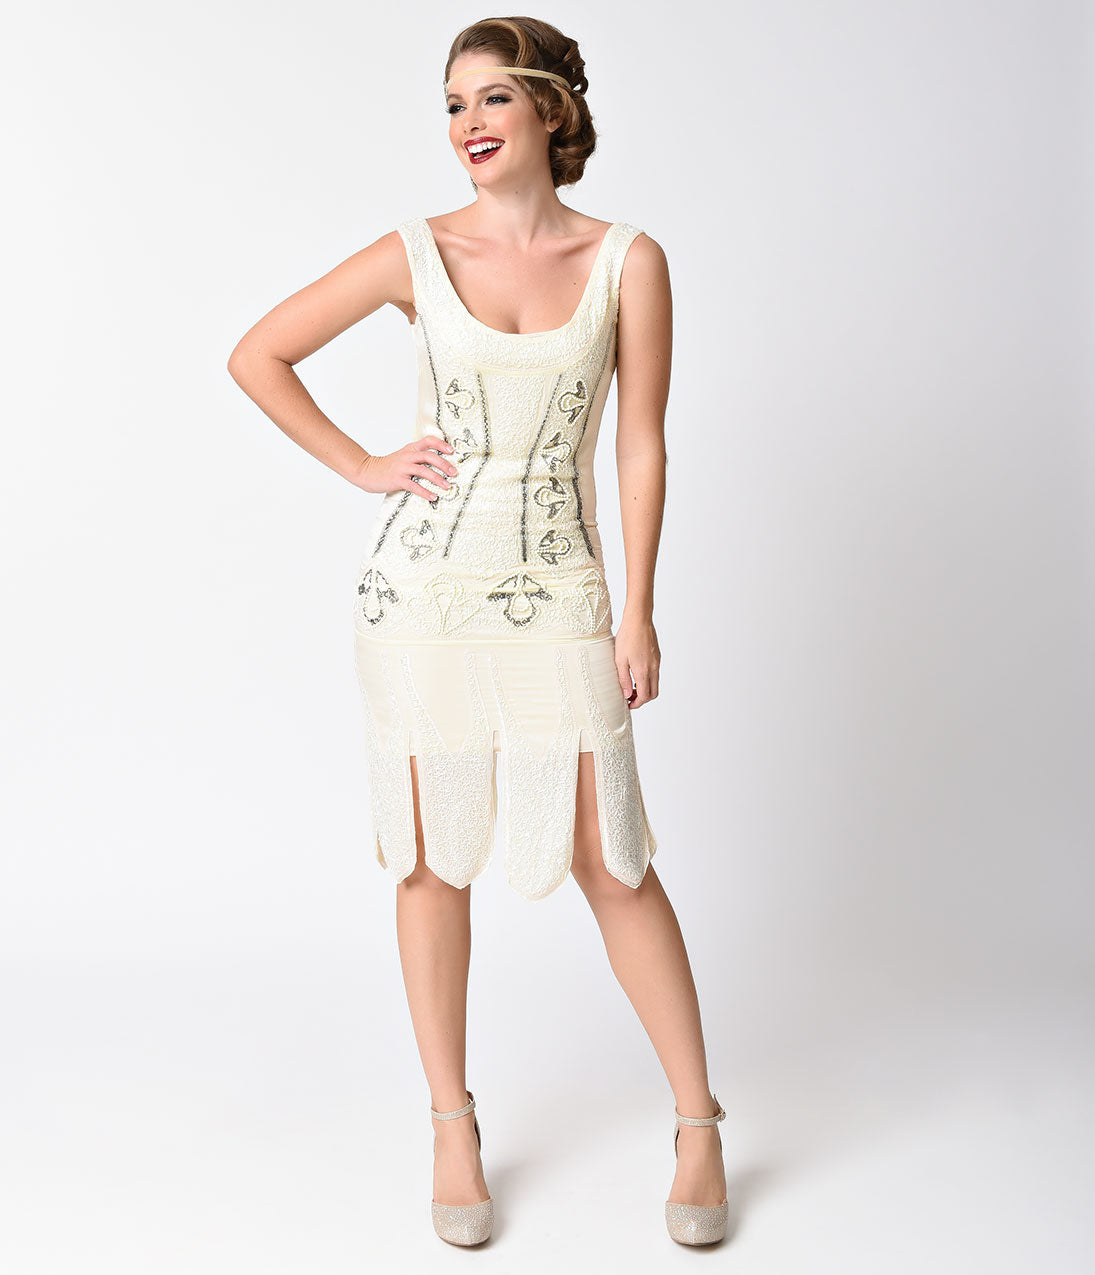 Vintage Inspired Wedding Dress | Vintage Style Wedding Dresses Unique Vintage 1920S Antique Ivory Beaded Sateen Eleanor Flapper Dress $53.00 AT vintagedancer.com